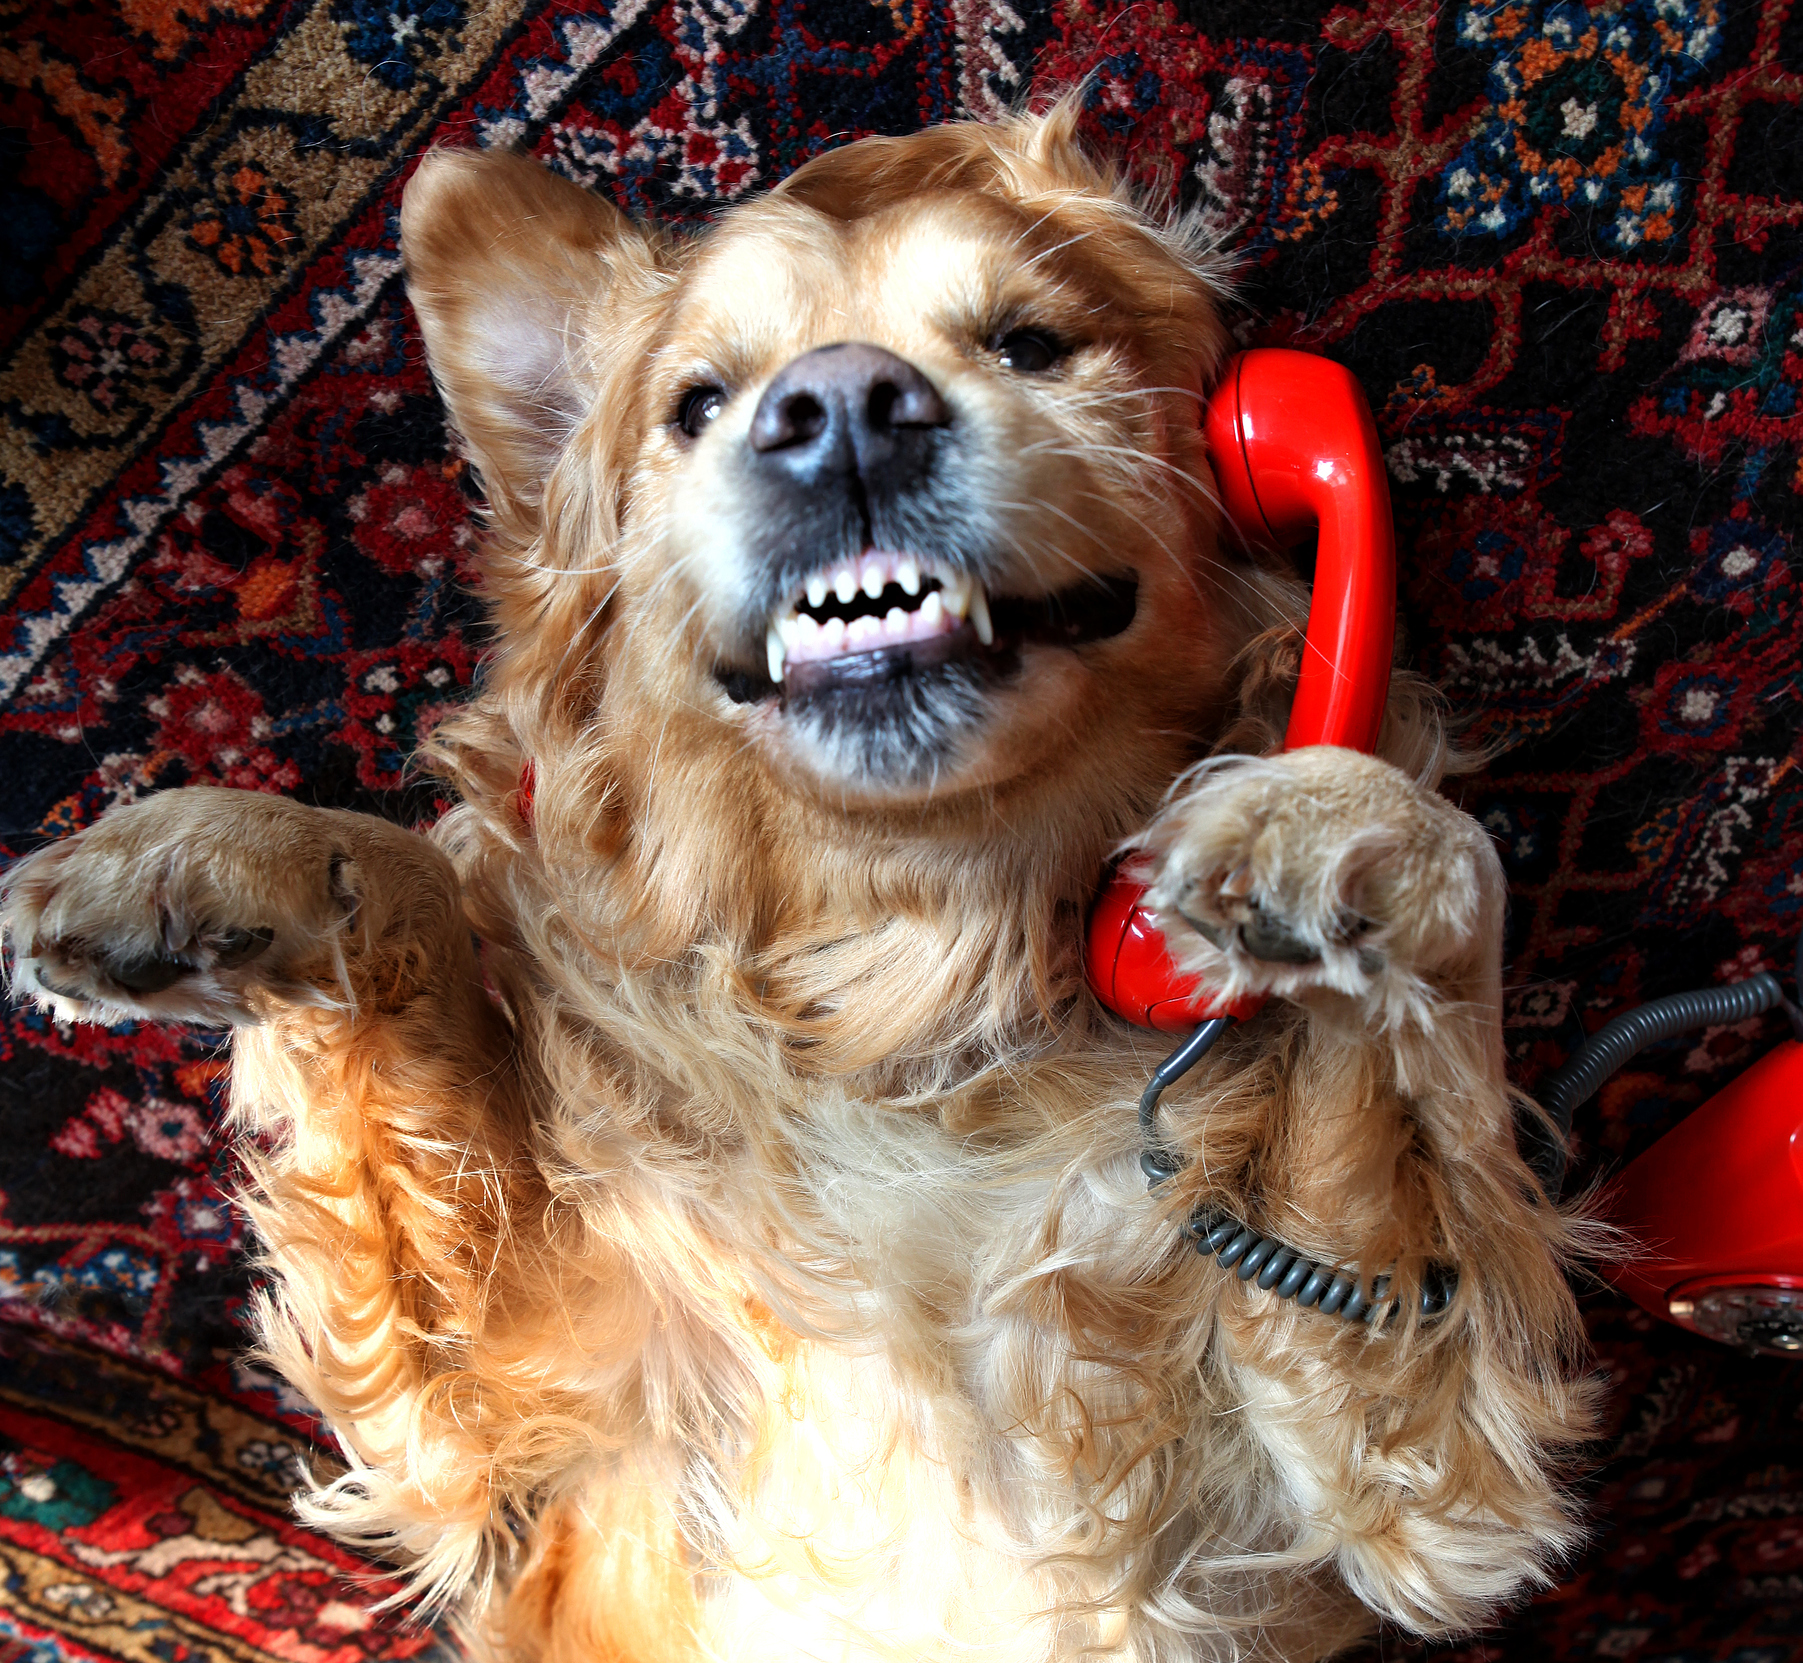 Worst stock picture: dog on the phone